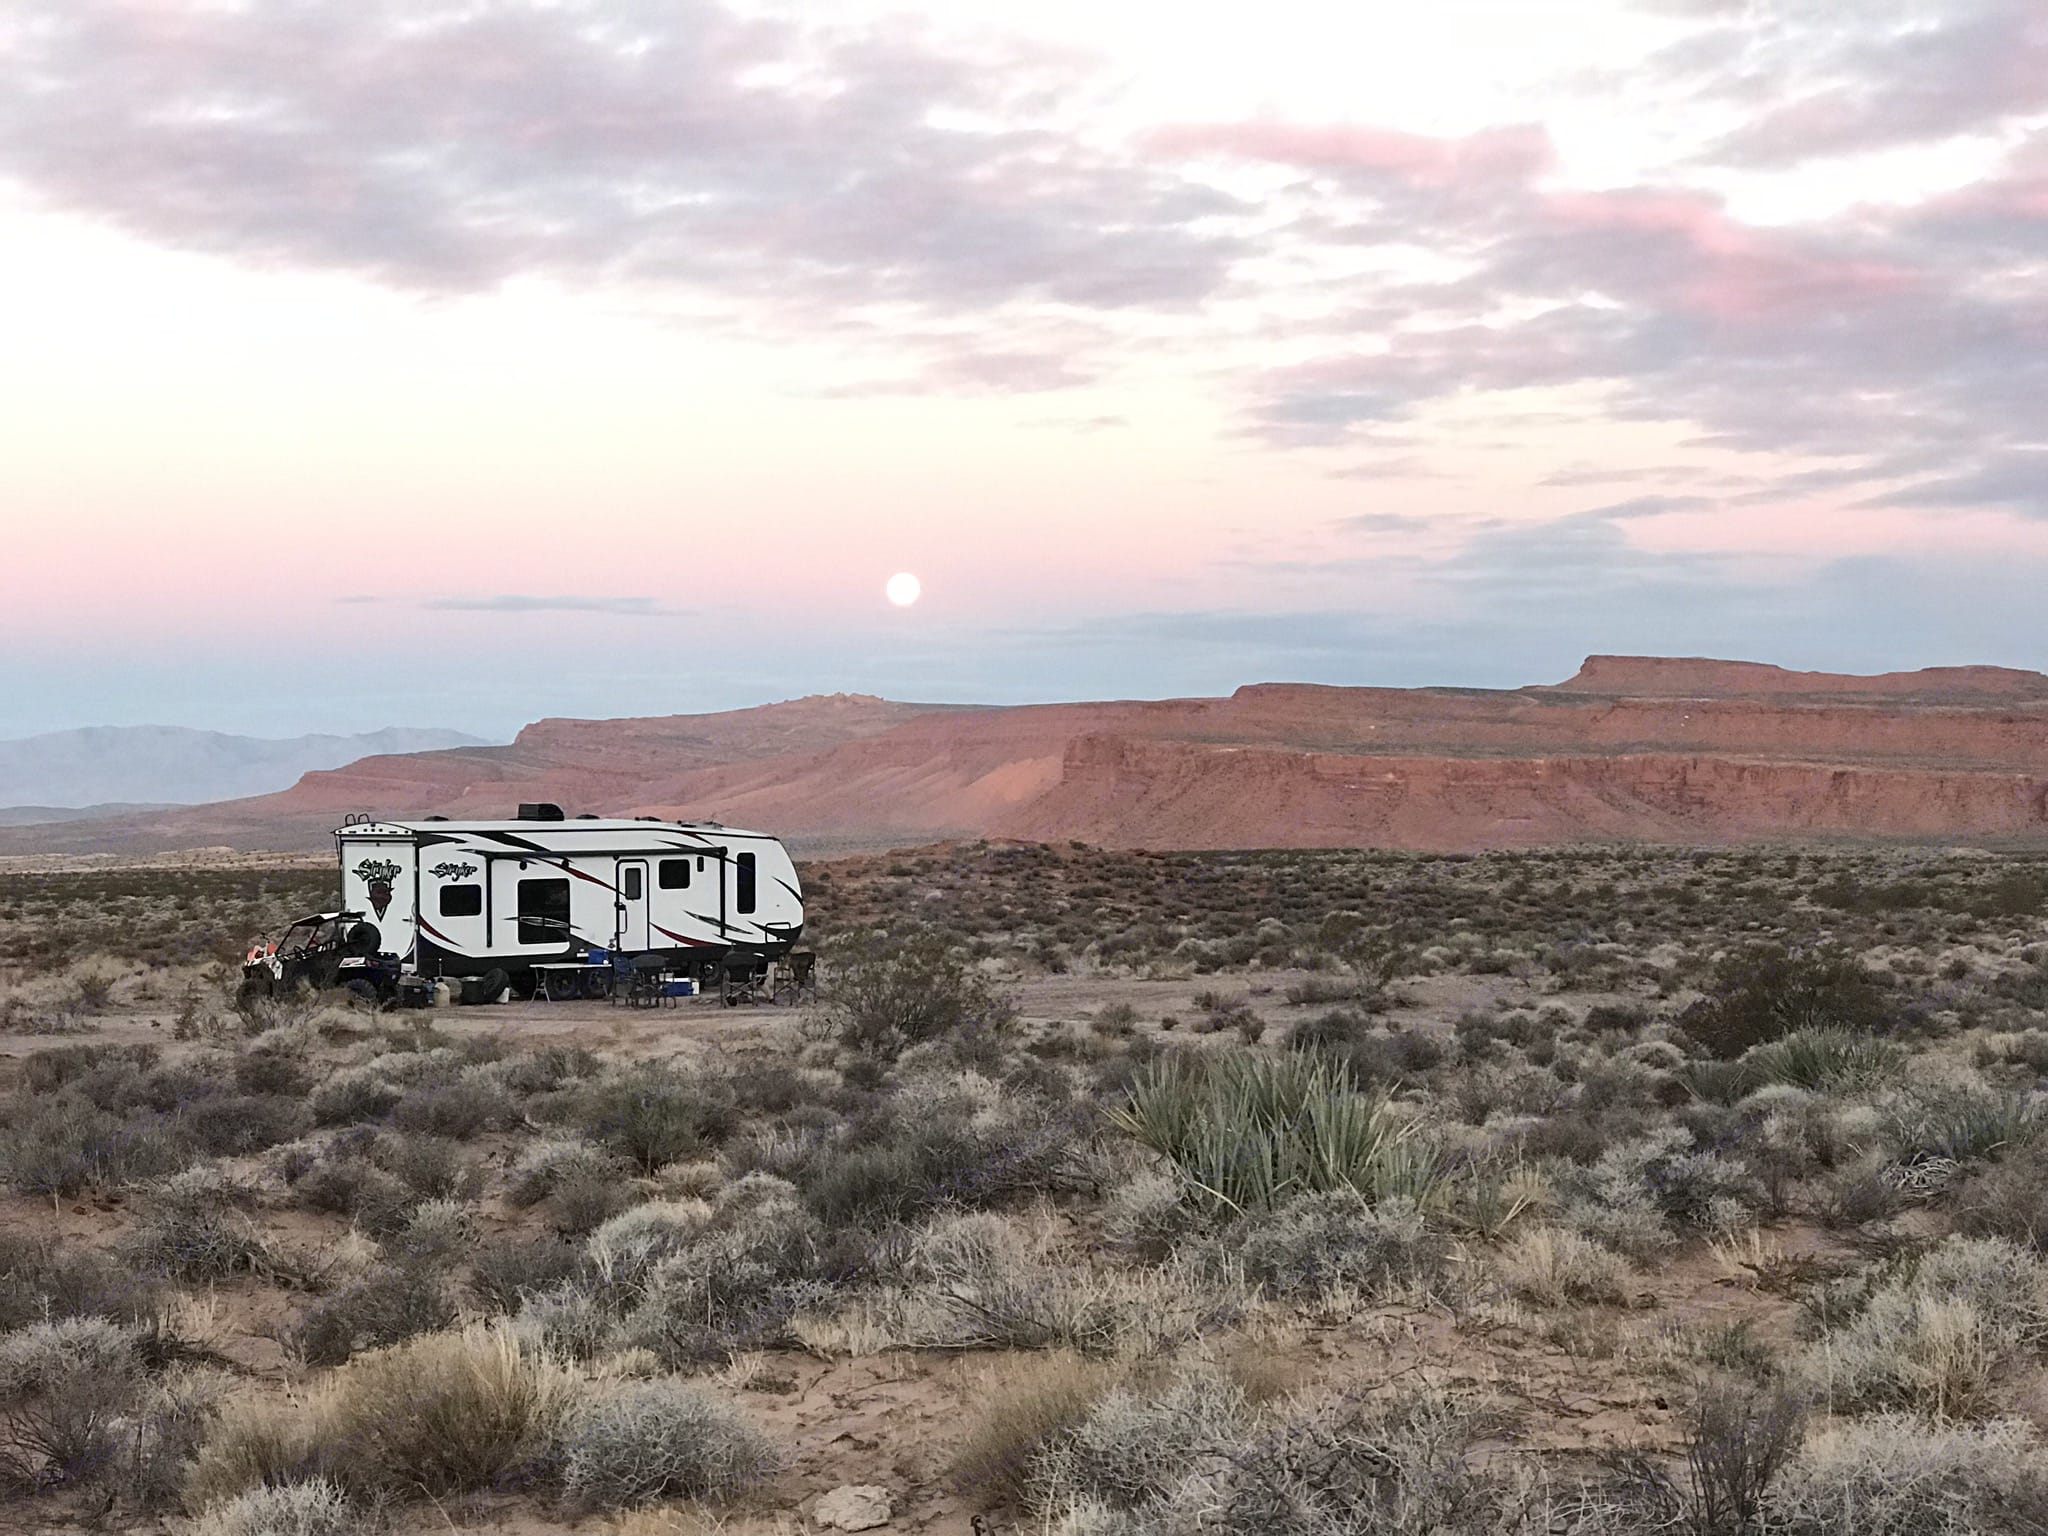 Enjoy the solitude of being off the grid in the desert. Cruiser Rv Corp Stryker 2016